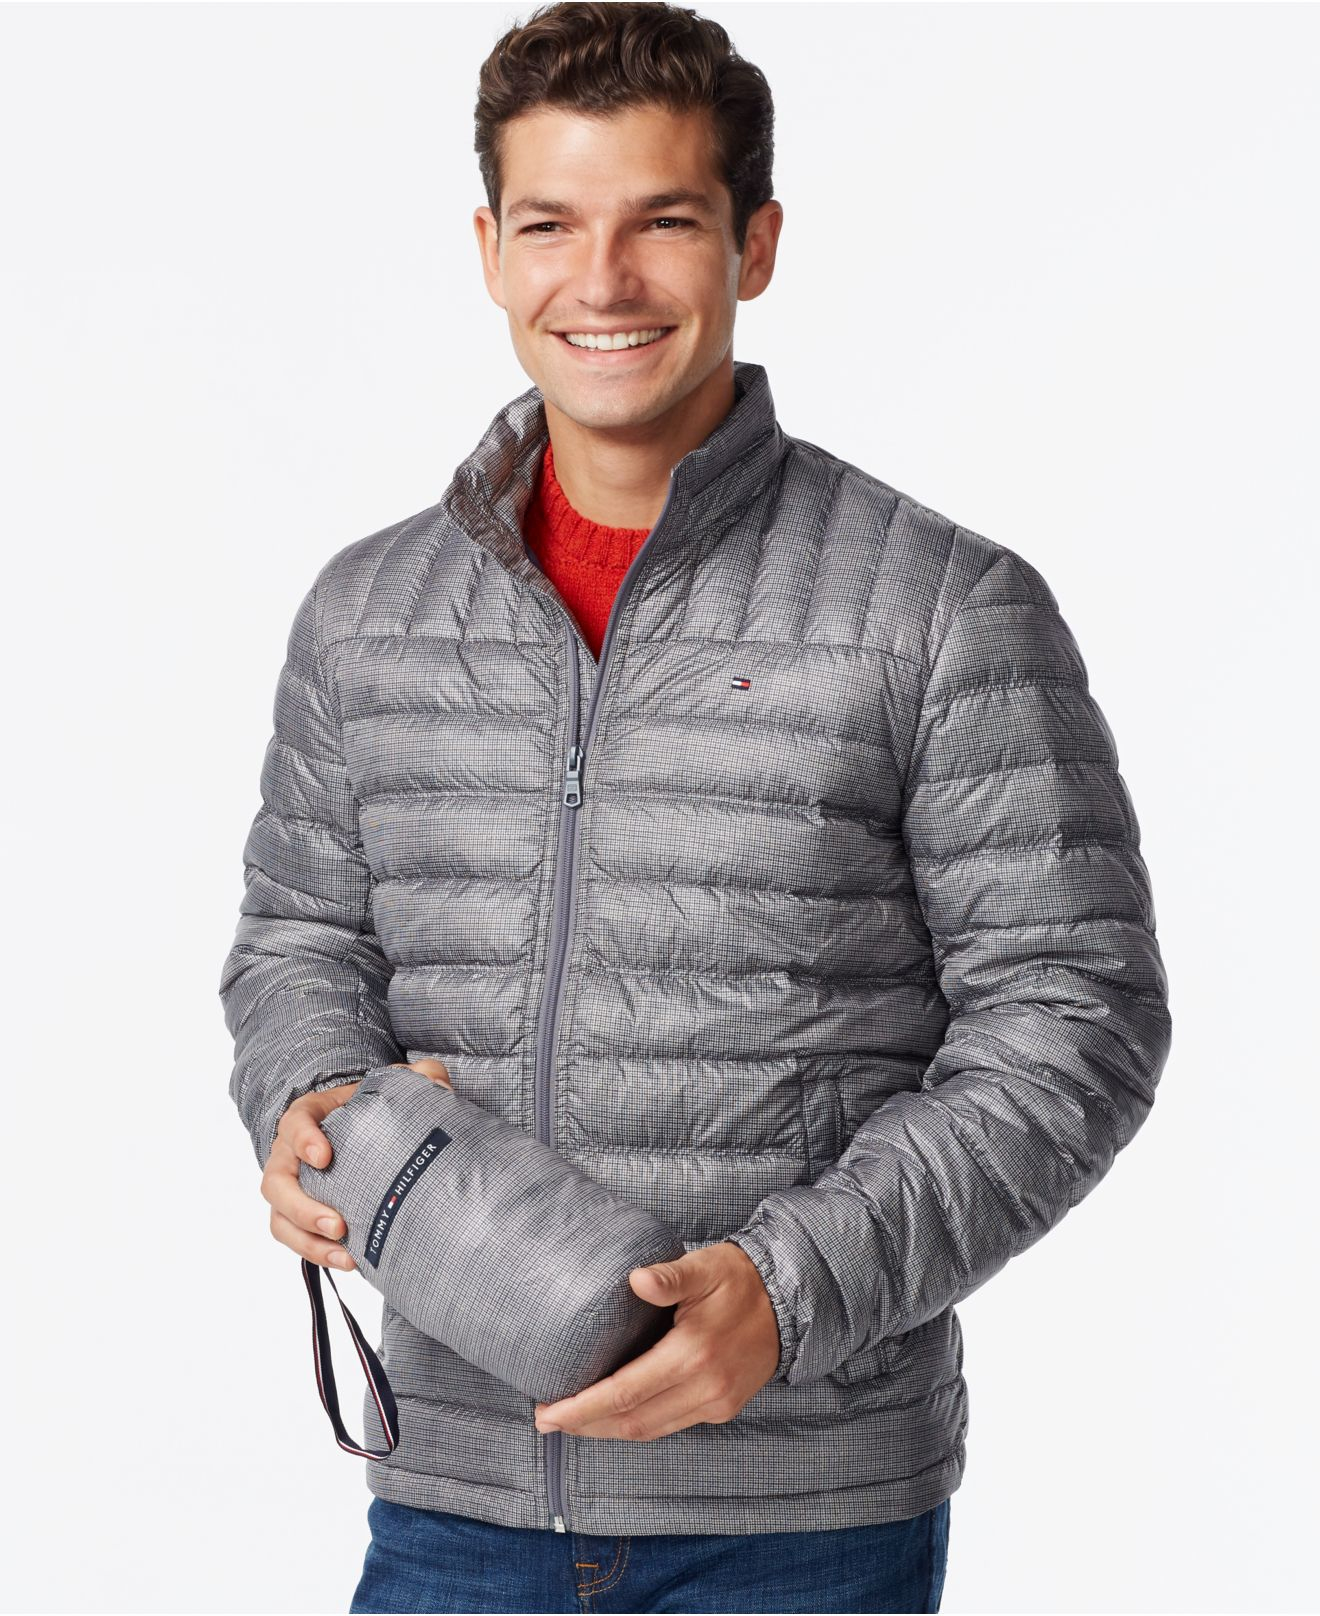 Tommy hilfiger Nylon Packable Jacket in Gray for Men - Save 65% | Lyst